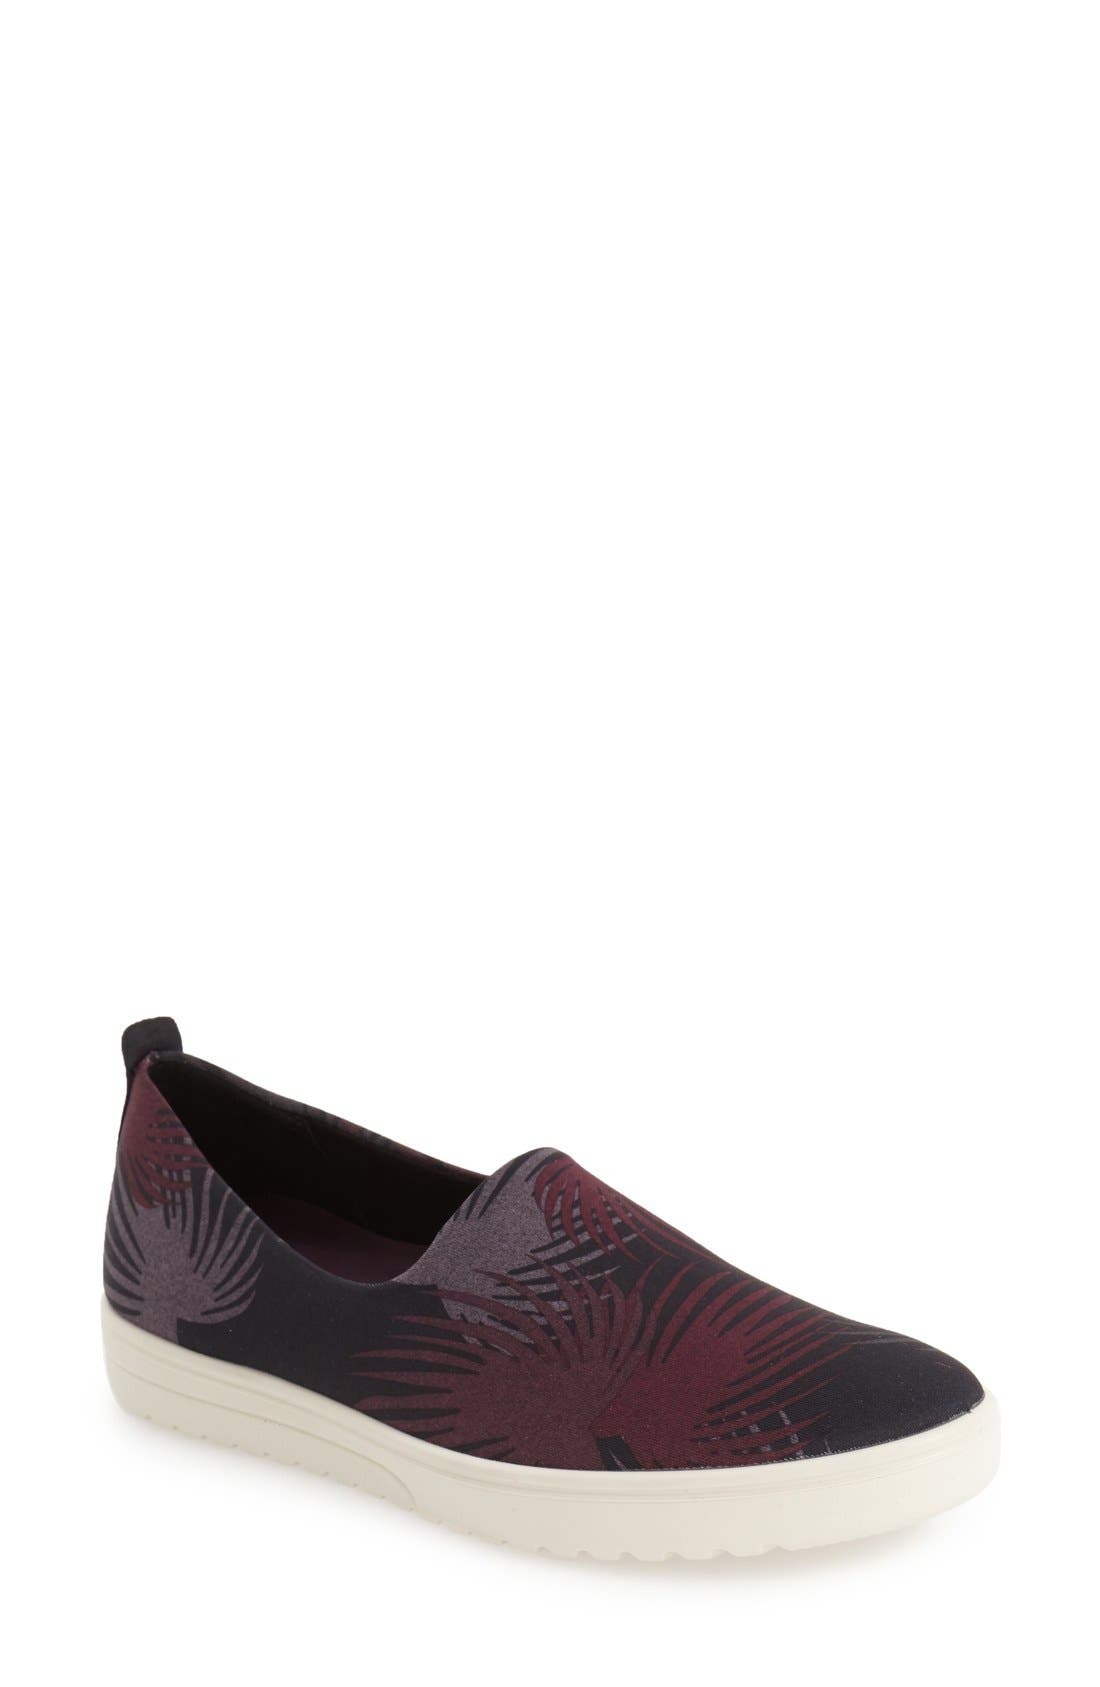 'Fara' Slip-On Sneaker,                             Main thumbnail 3, color,